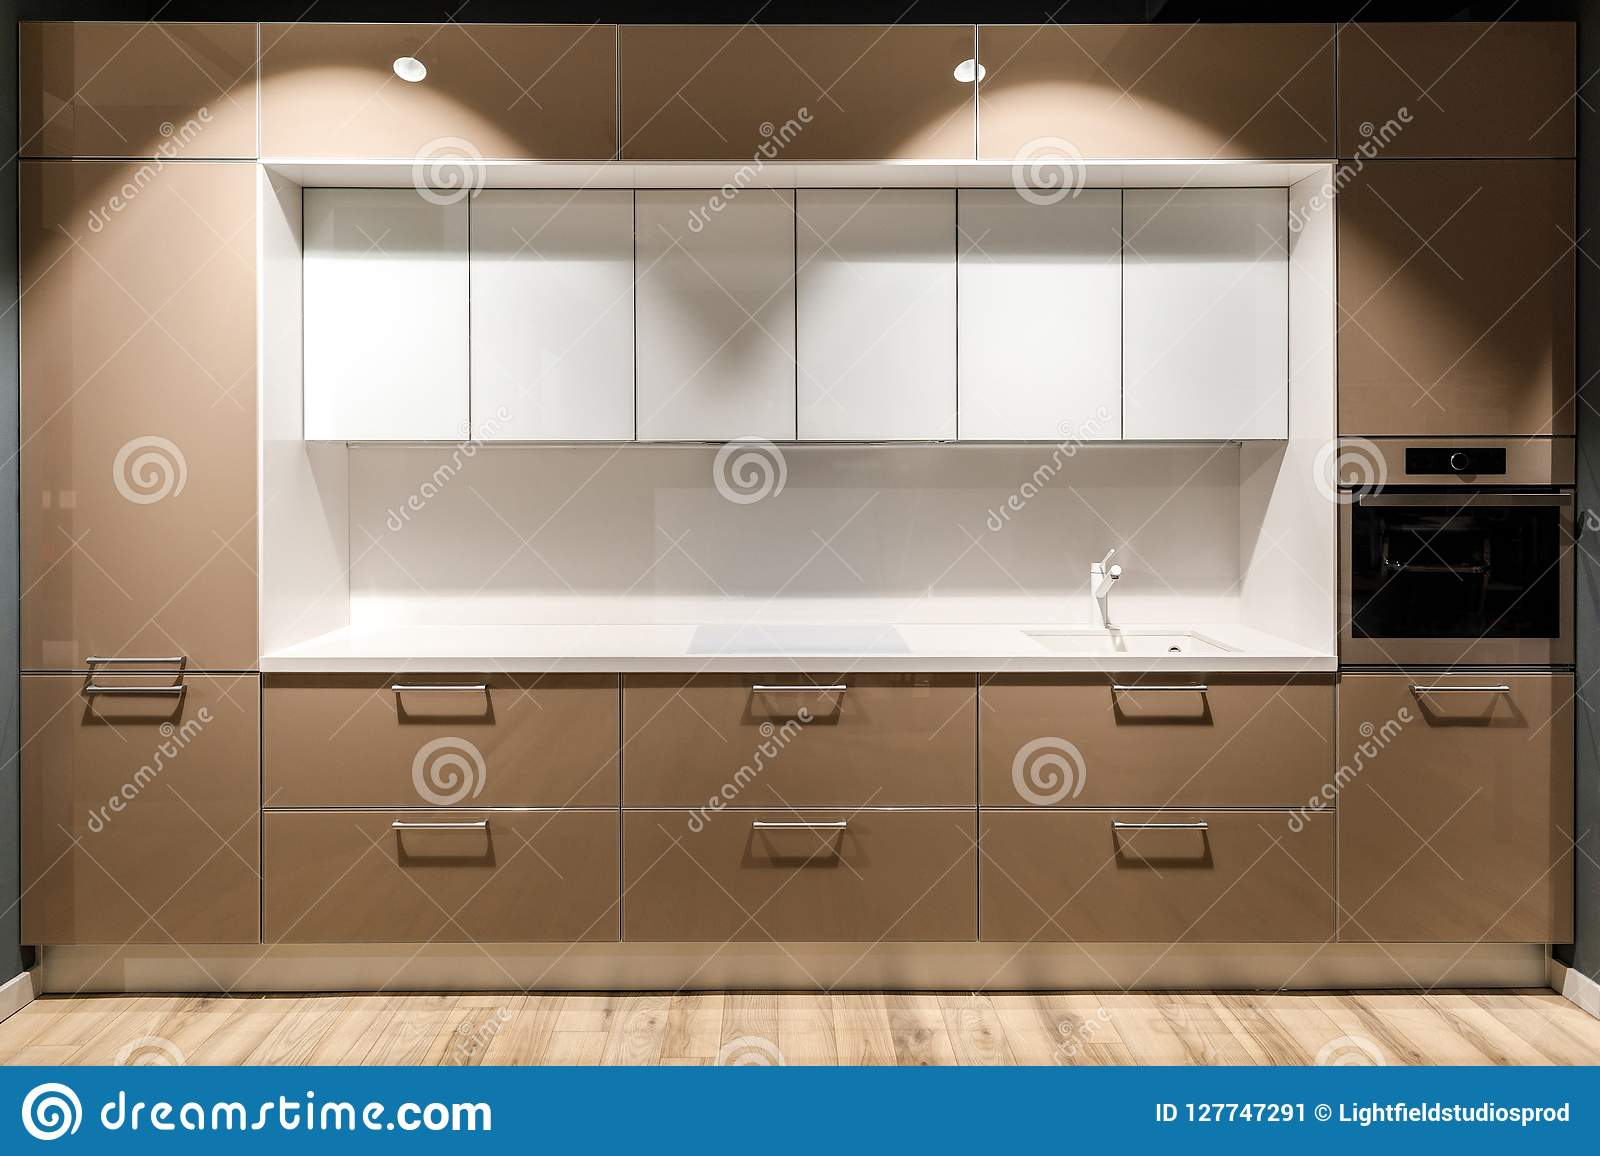 Interior Of Modern Kitchen With Stylish Design In Brown And